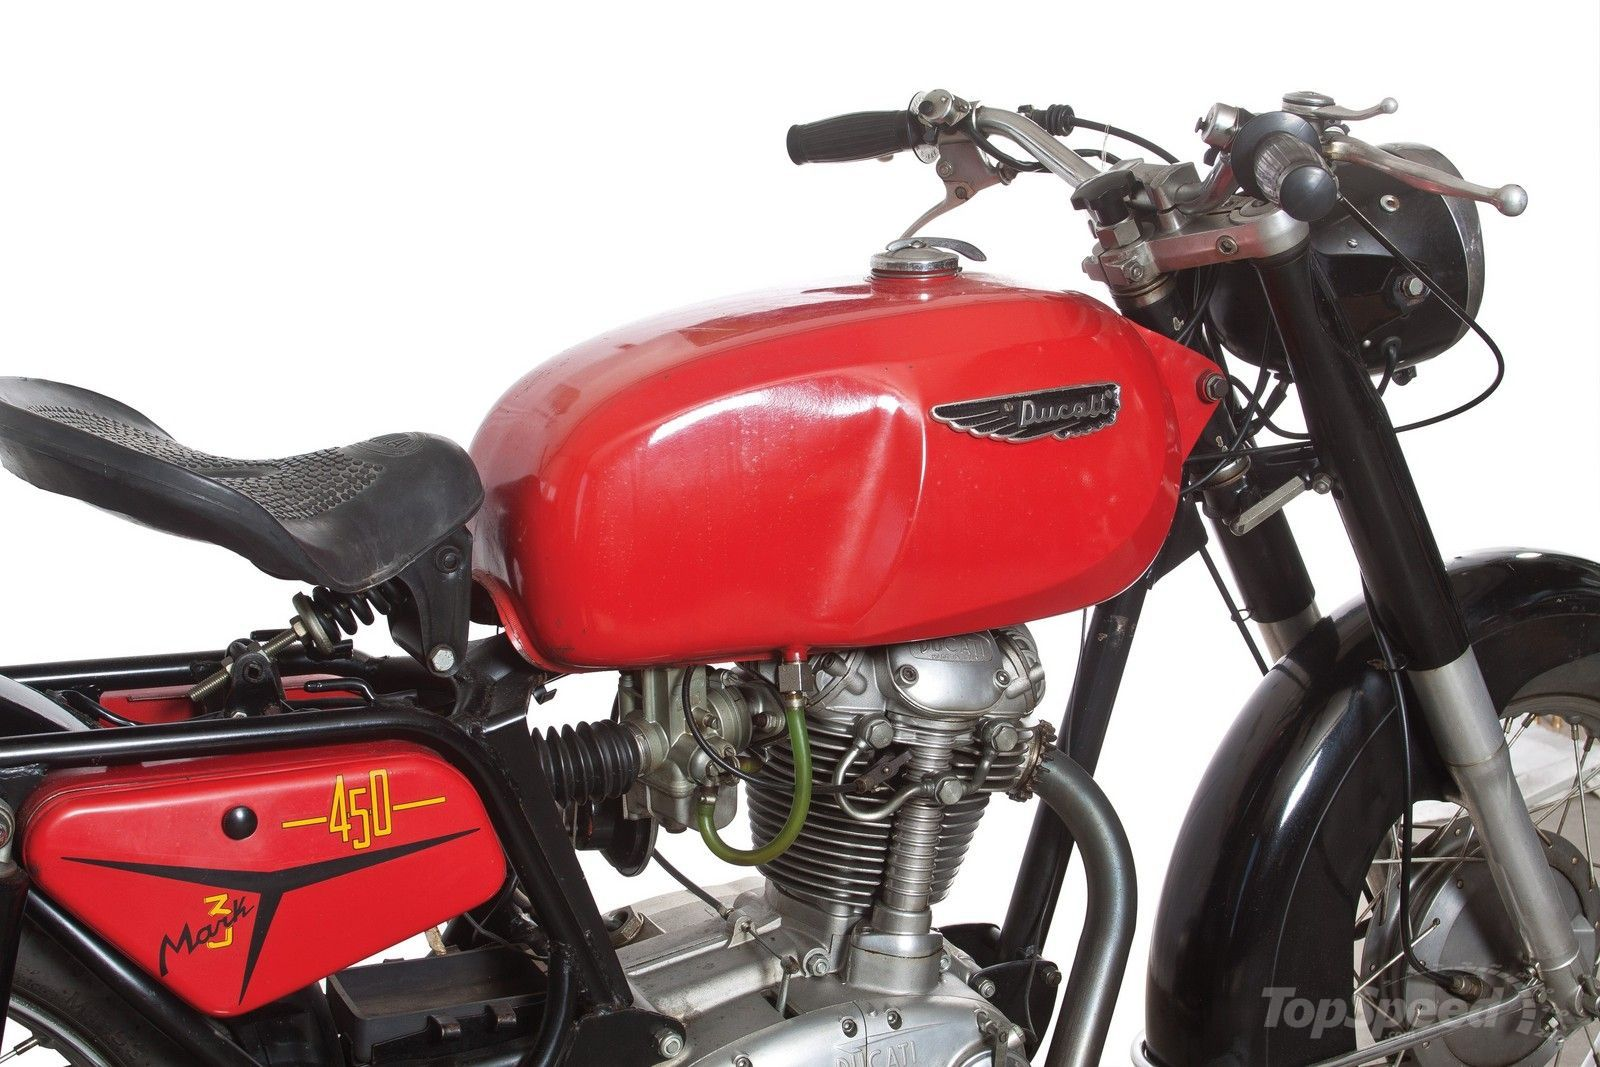 Ducati 450 Mark 3 1971 images #148090